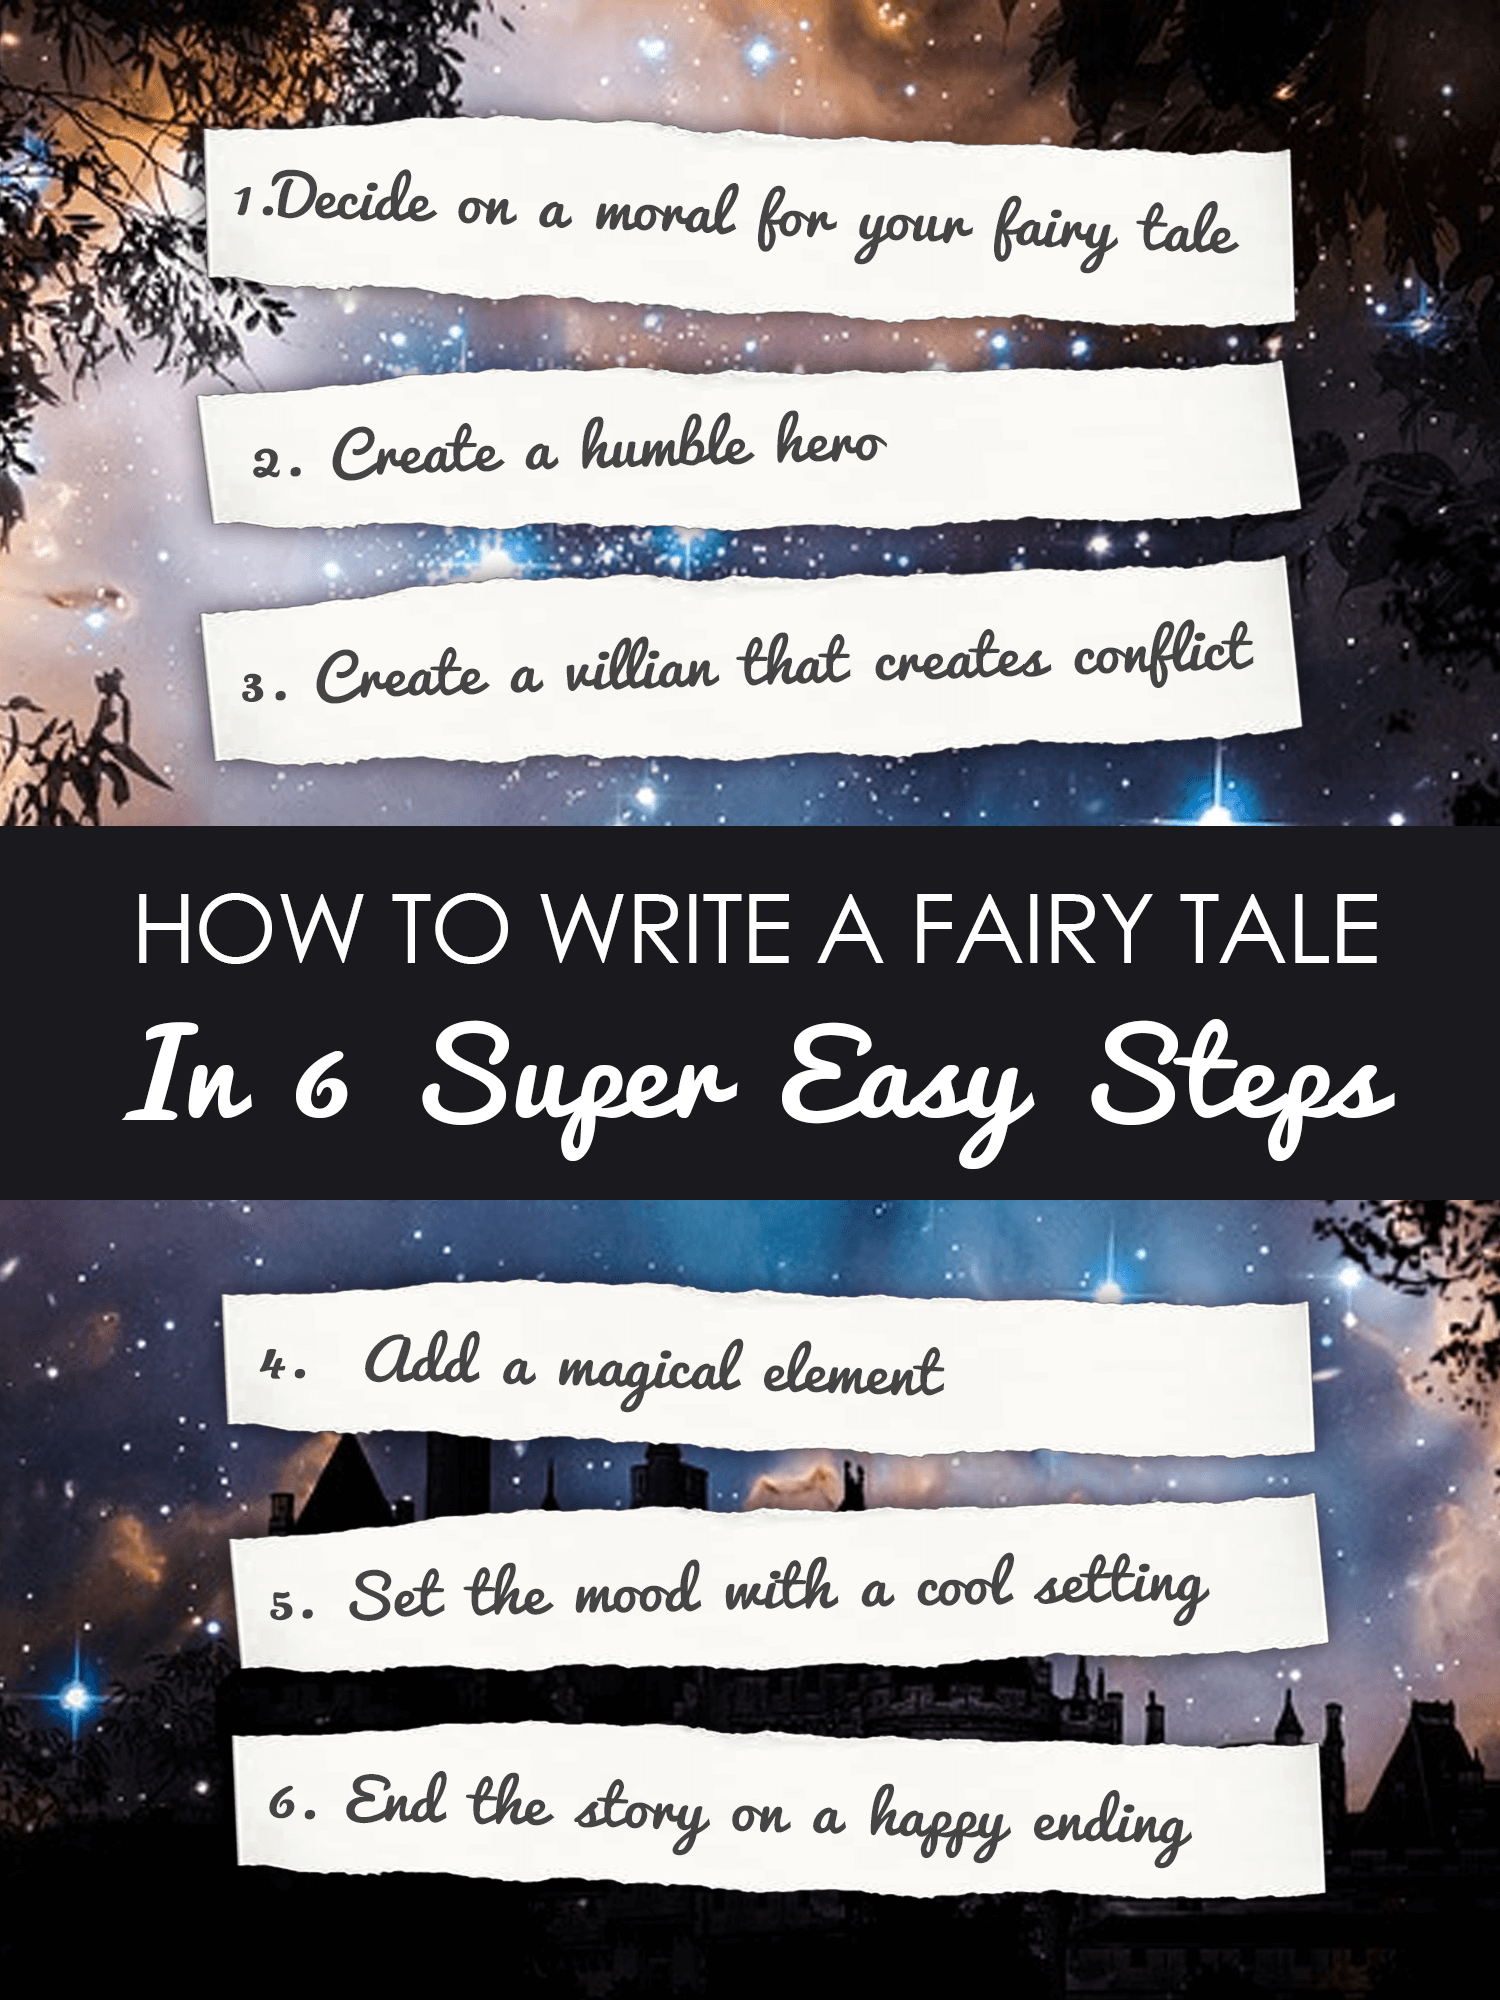 How To Write A Fairy Tale In 6 Steps